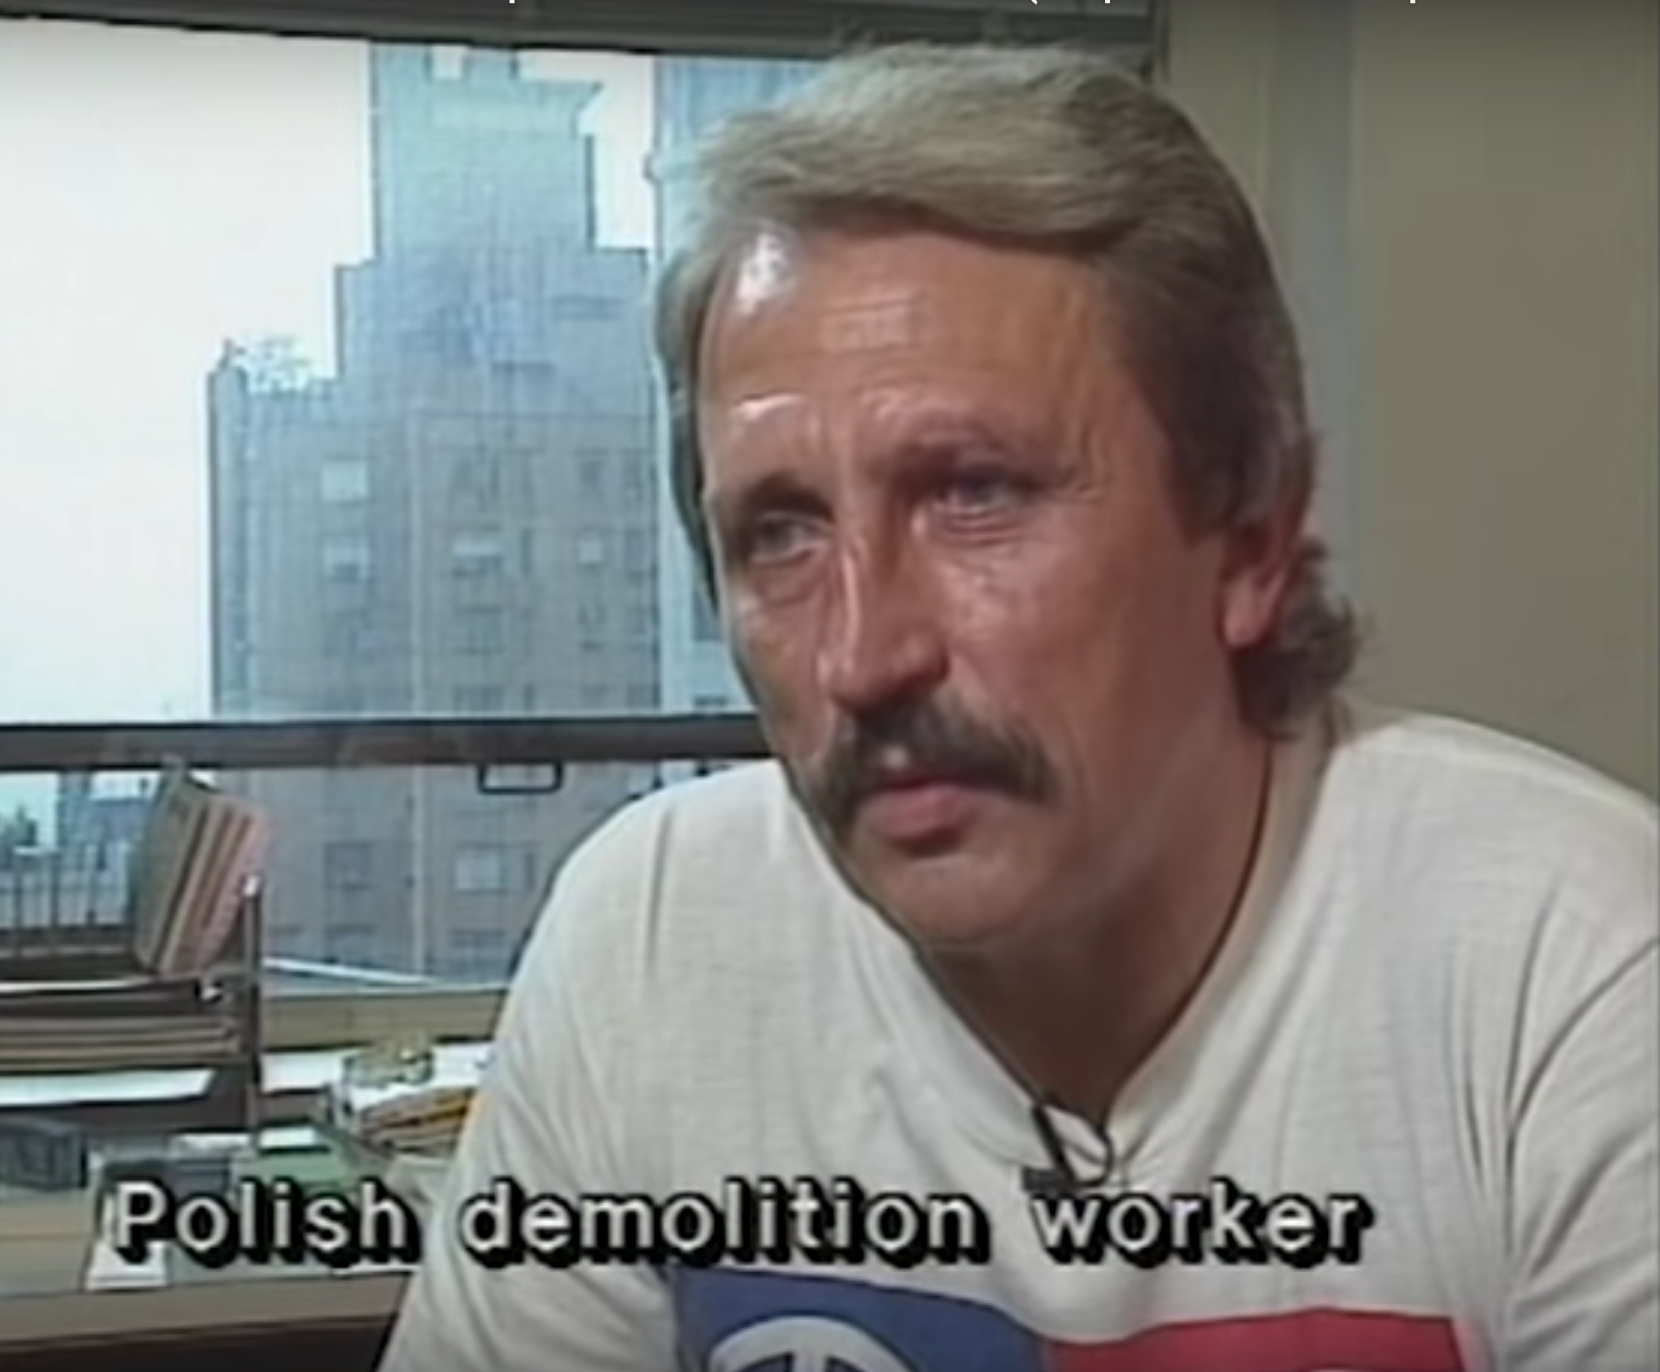 Polish demolition worker